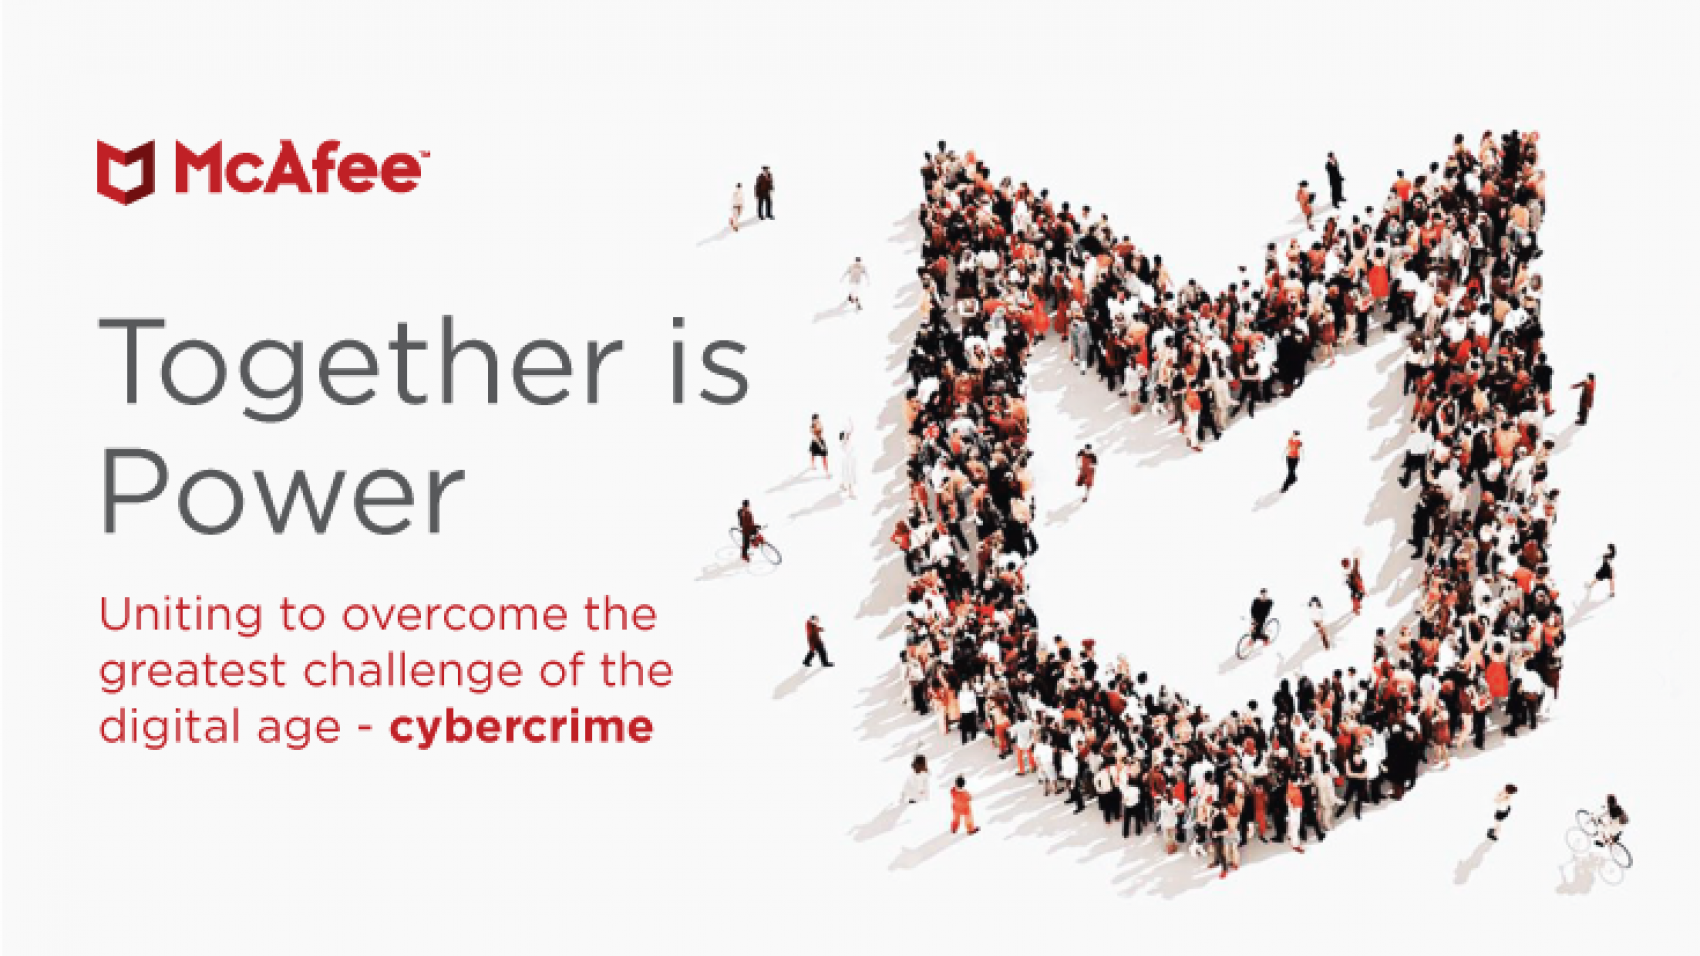 Website-Banner-McAfee-Together-is-Power-November-25